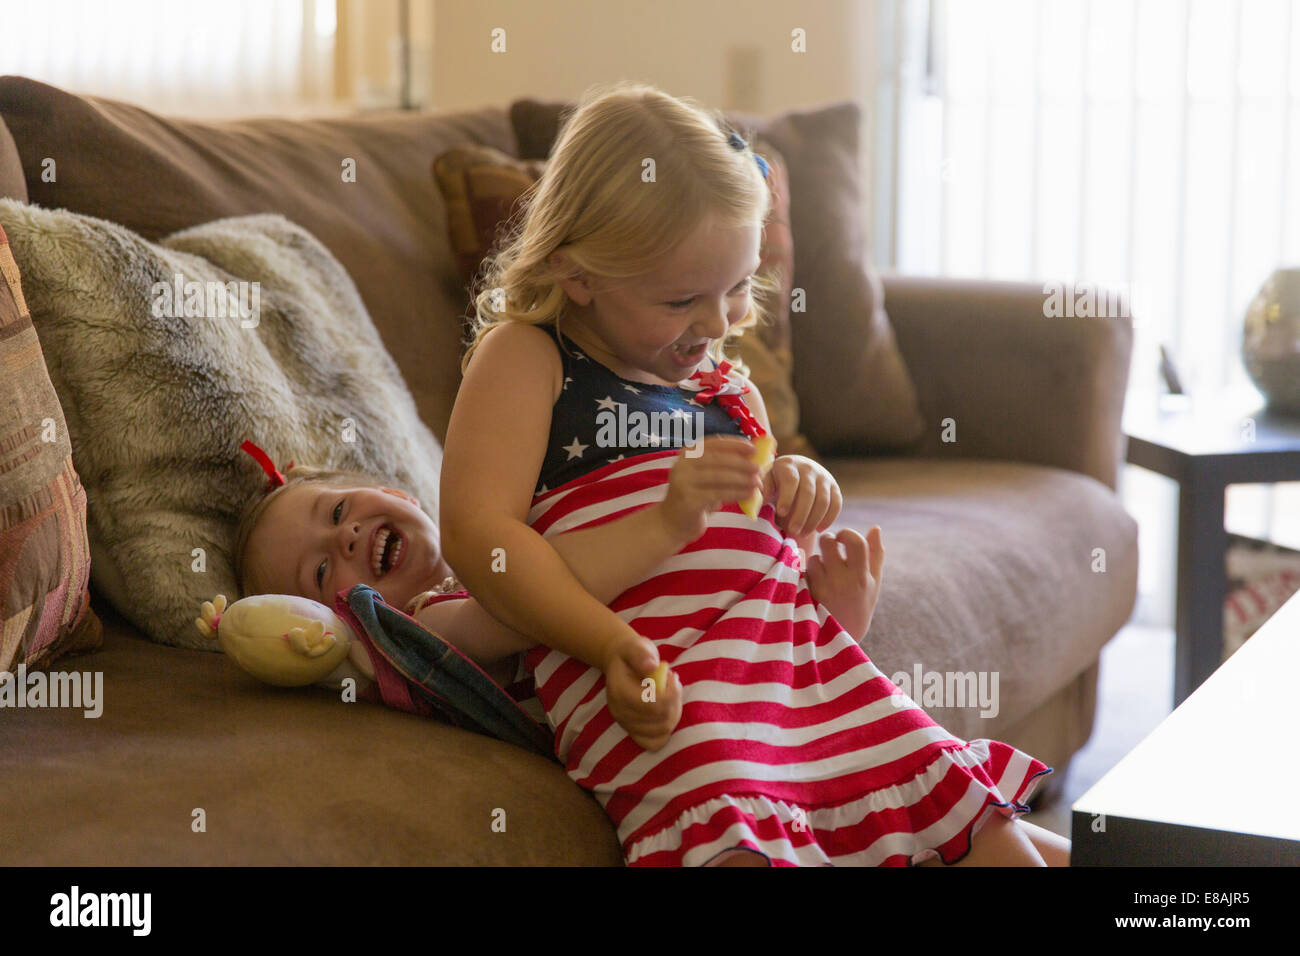 Girl sitting on top of older sister on sofa - Stock Image